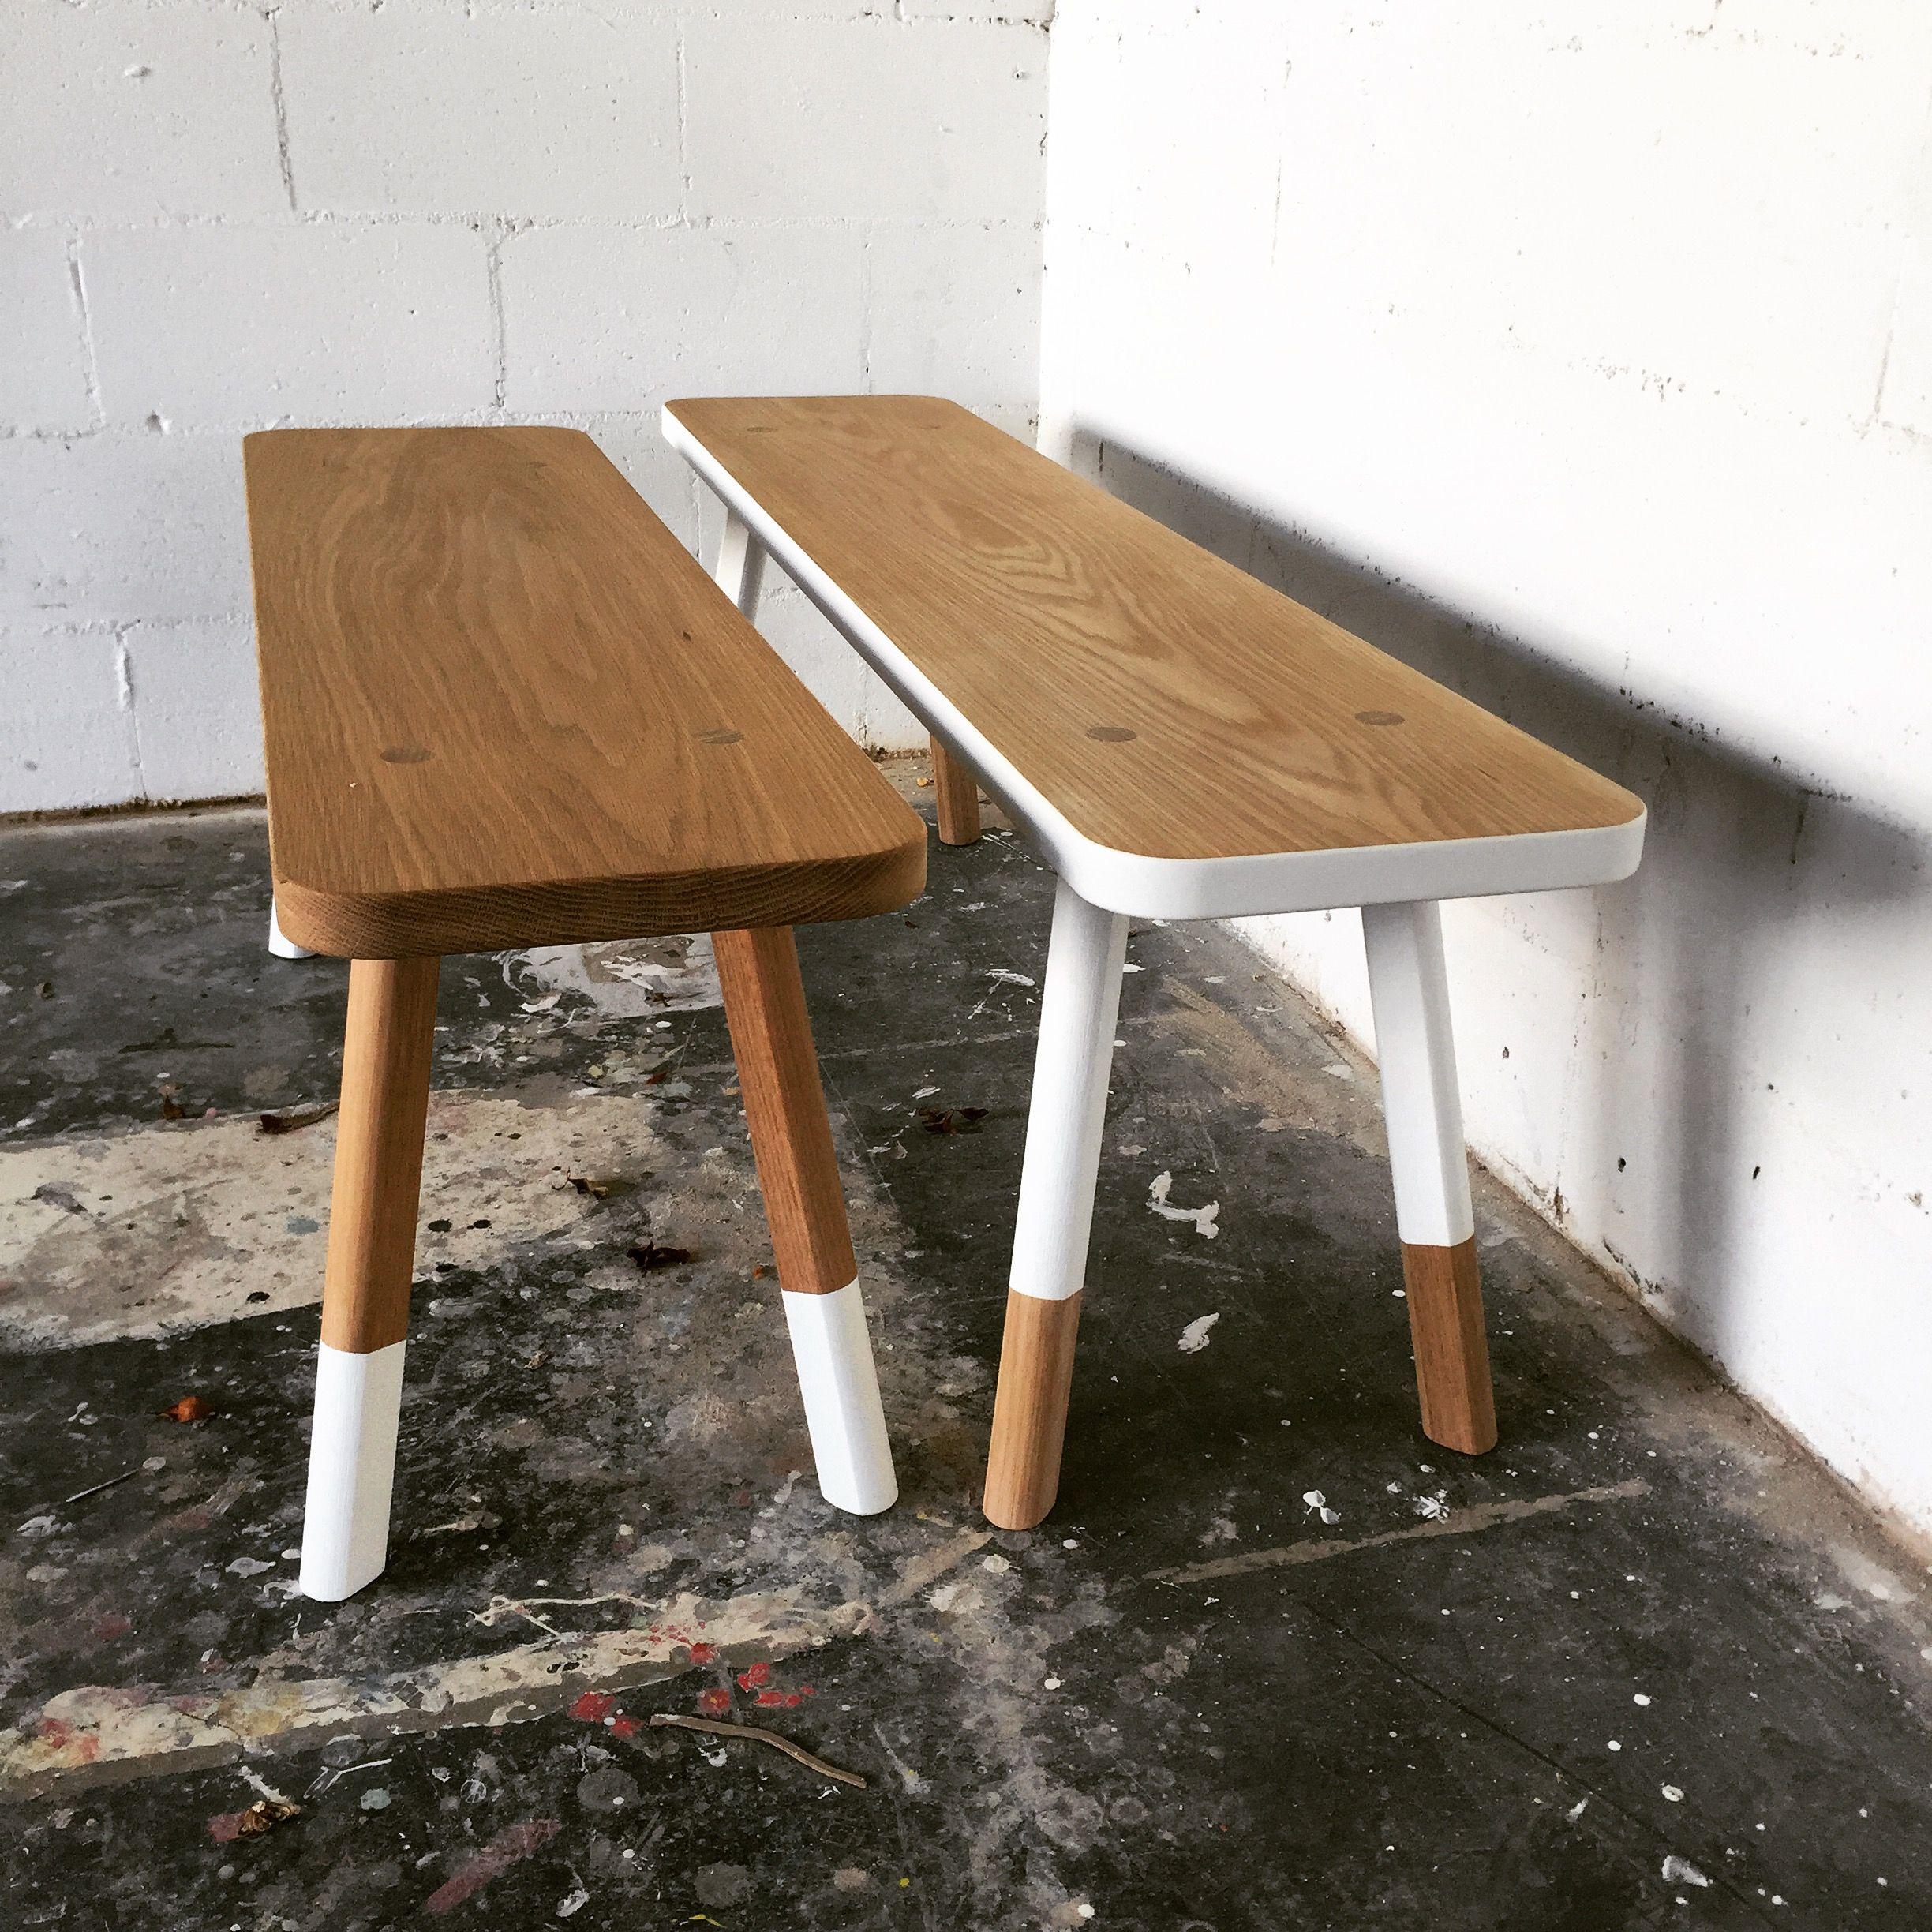 Babanees benches by Green Cathedral Seating, stools, timber bench ...